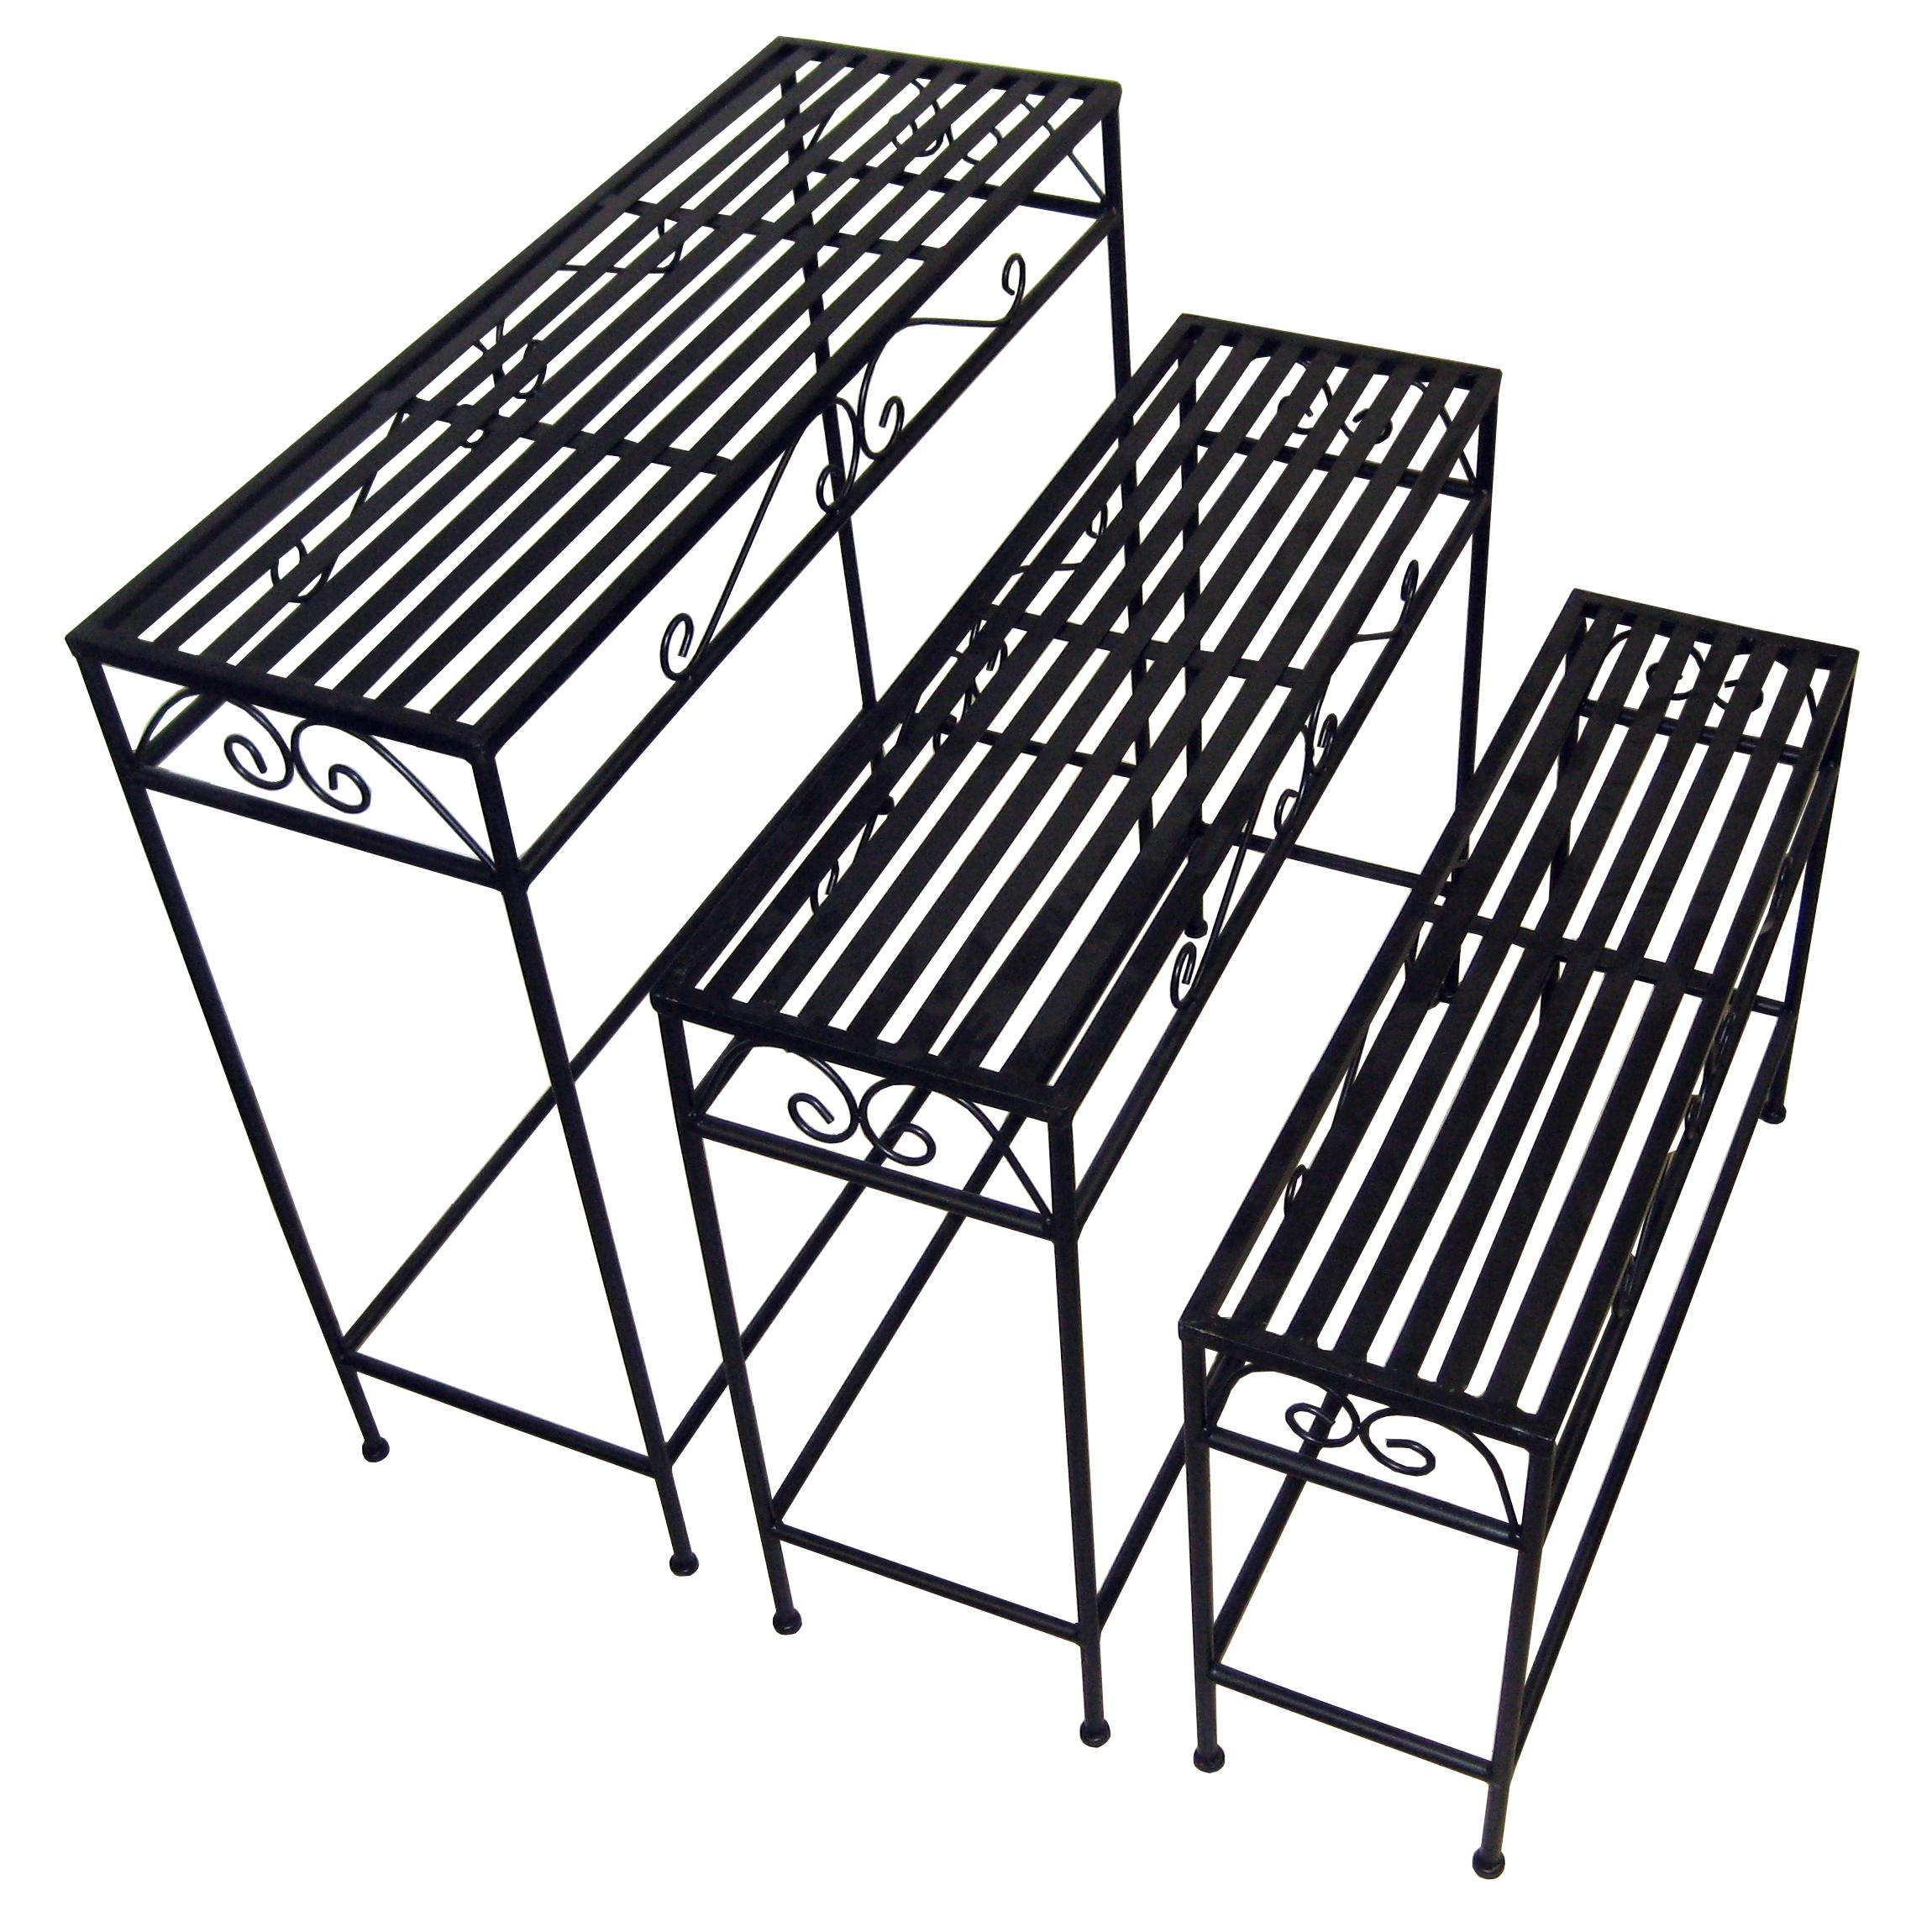 Nesting Tables For Patio | Mpfmpf Almirah, Beds, Wardrobes And Pertaining To Patio Sofa Tables (Image 11 of 20)